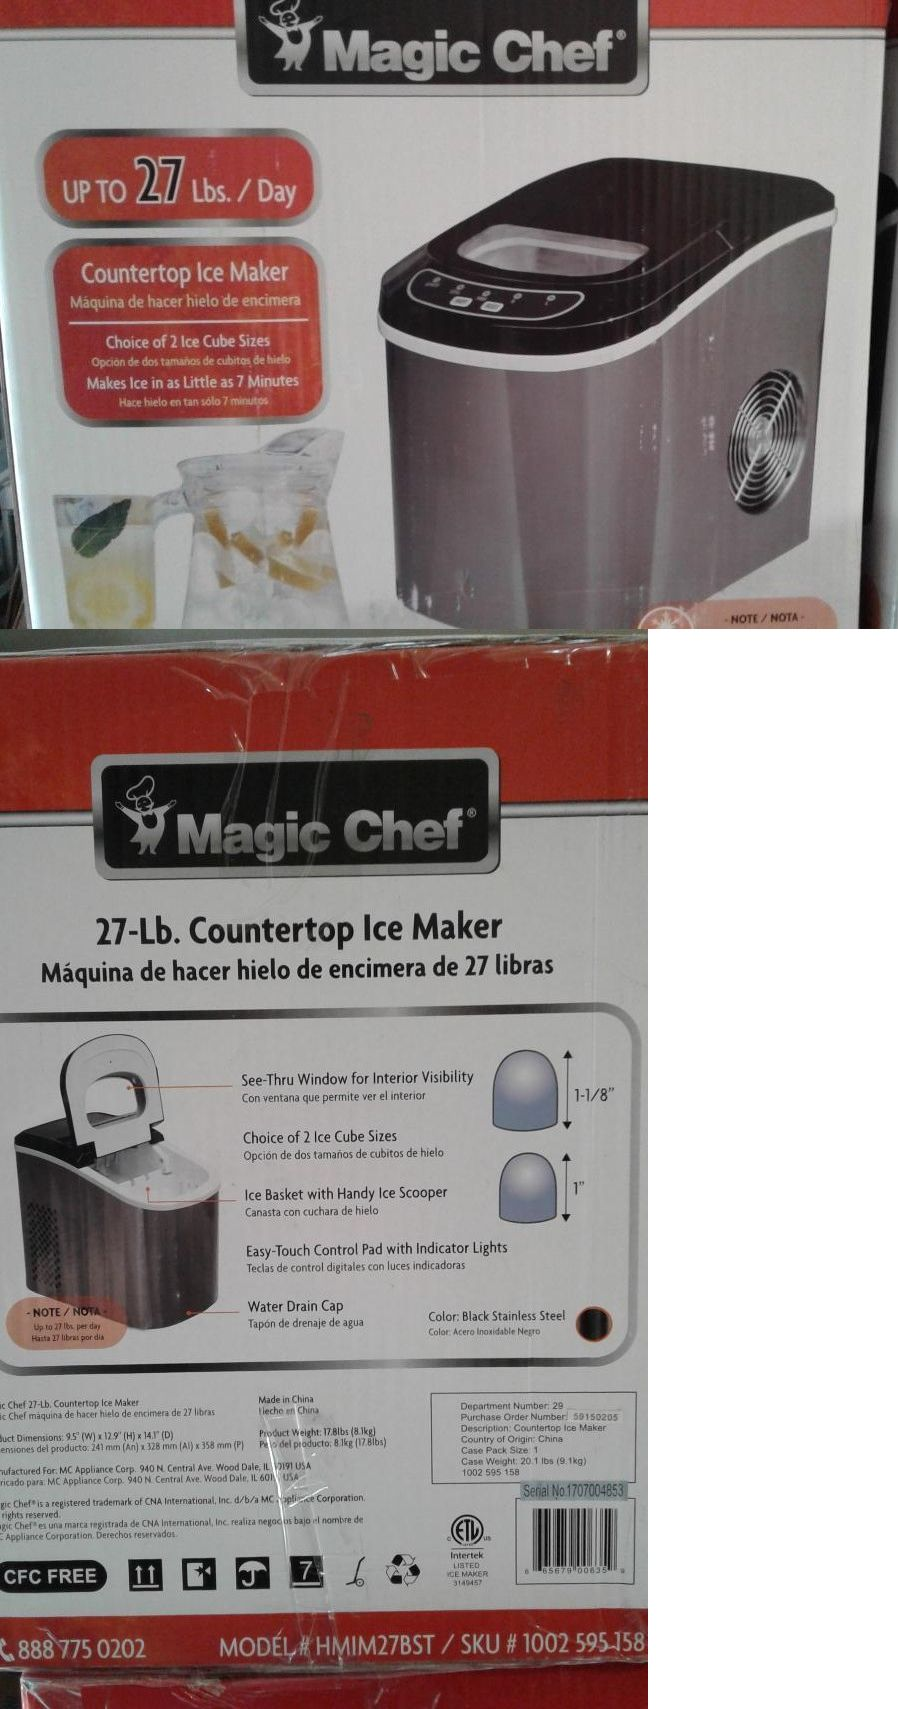 New Magic Chef Hmim27bst 27lb Portable Countertop Ice Maker